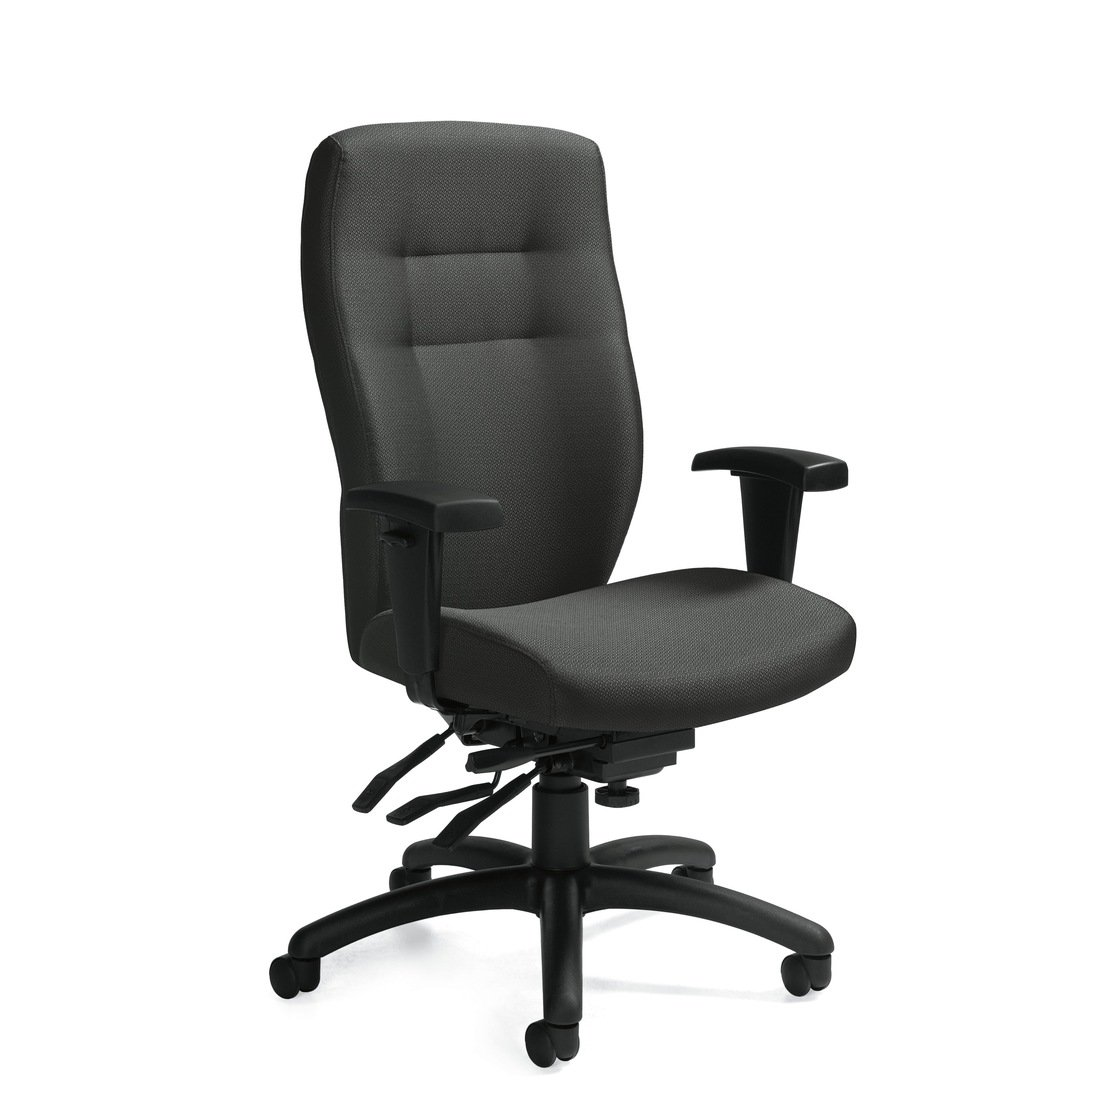 Synopsis high back multi-tilter chair, model 5080-3. This chair has been placed on a white background.